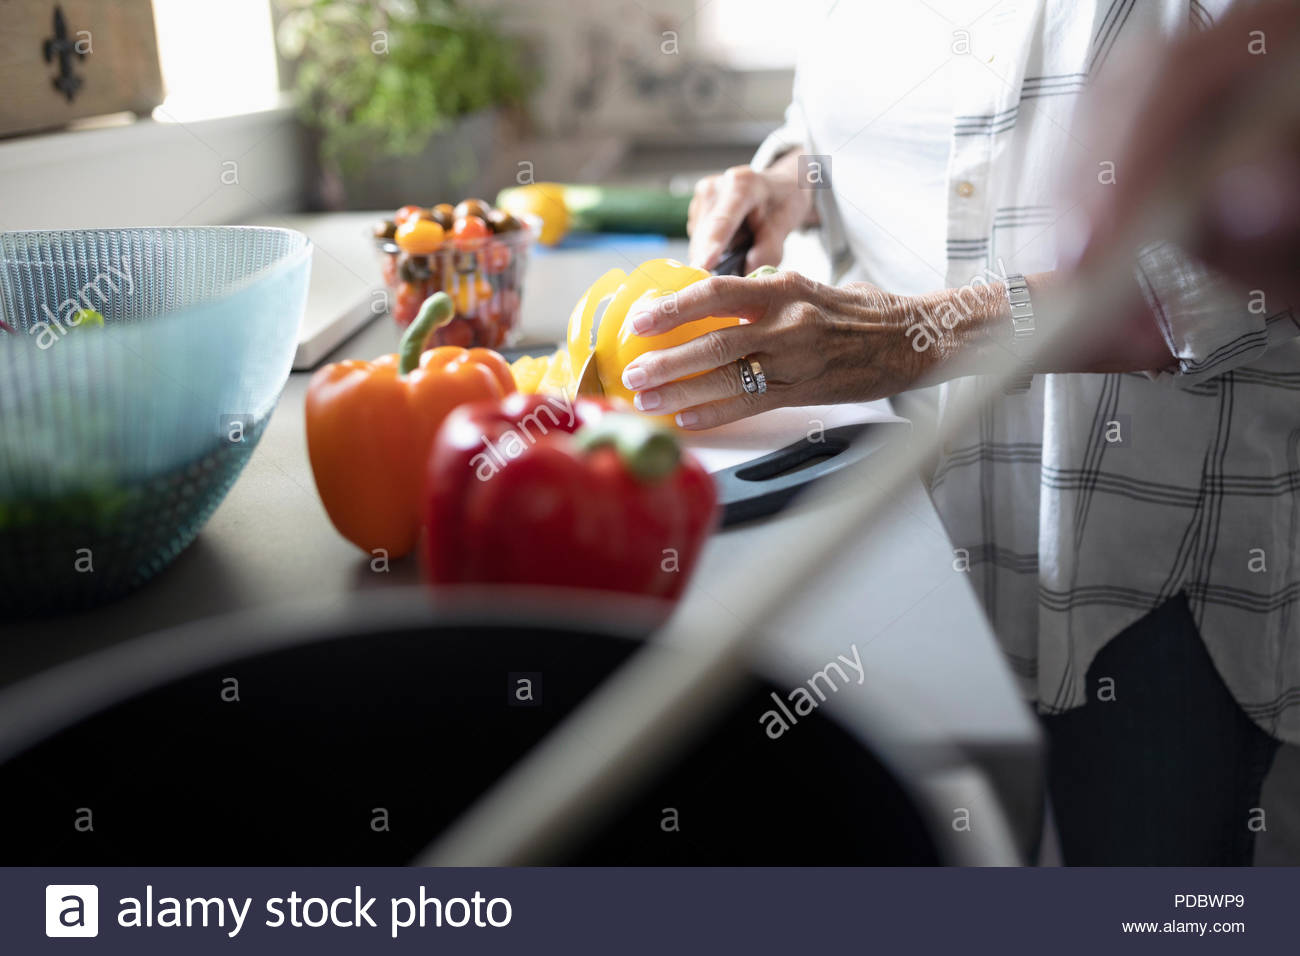 Close up senior woman cutting bell peppers, cooking in kitchen - Stock Image